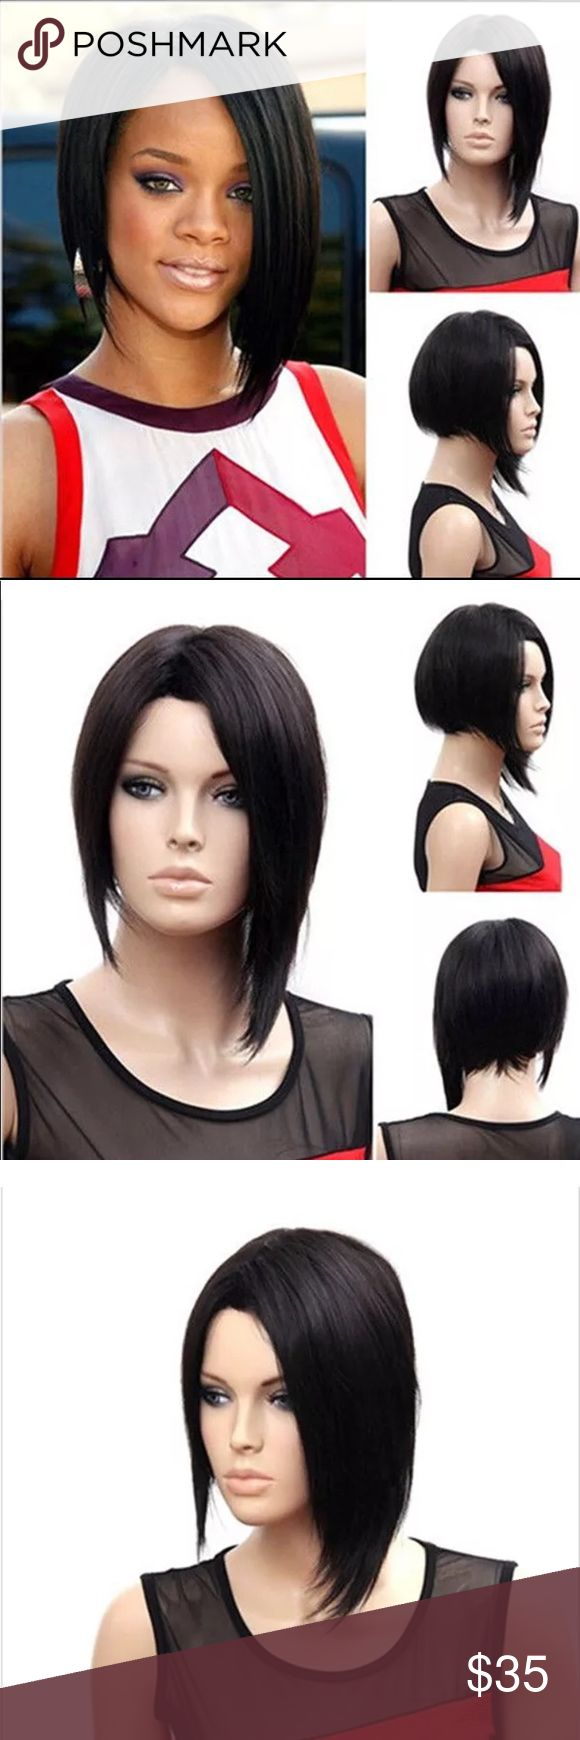 """12"""" Straight Jet Black Angled Bob Wig Short angled bob Length: Approximately 12"""" Color: Jet Black   Cap Size: Average Size~it is adjustable~ Material: Shiny Heat Resistant High Temperature Synthetic Fiber material is very similar to human hair with it's appearance, color and feel  It can be straightened and curled at lower temperatures (150 degrees Celsius) It is soft, silky and looks and feels just like your real hair 🛑 NOT recommend for dying and bleaching Other"""